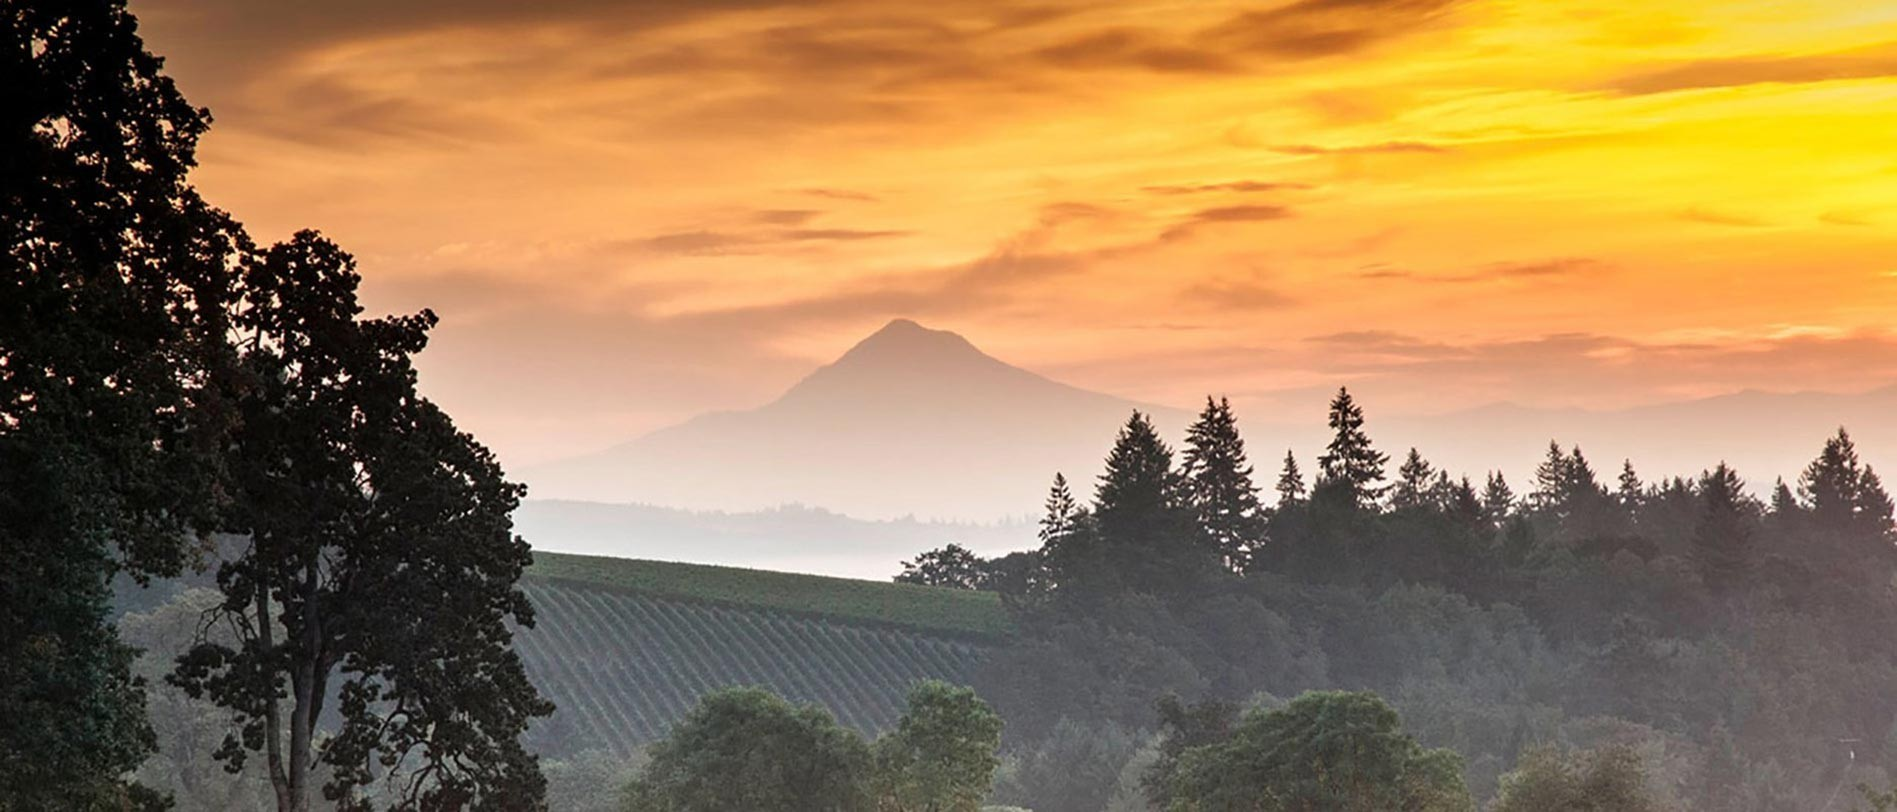 A beautiful sunset over a vineyard with trees and a mountain in the distance